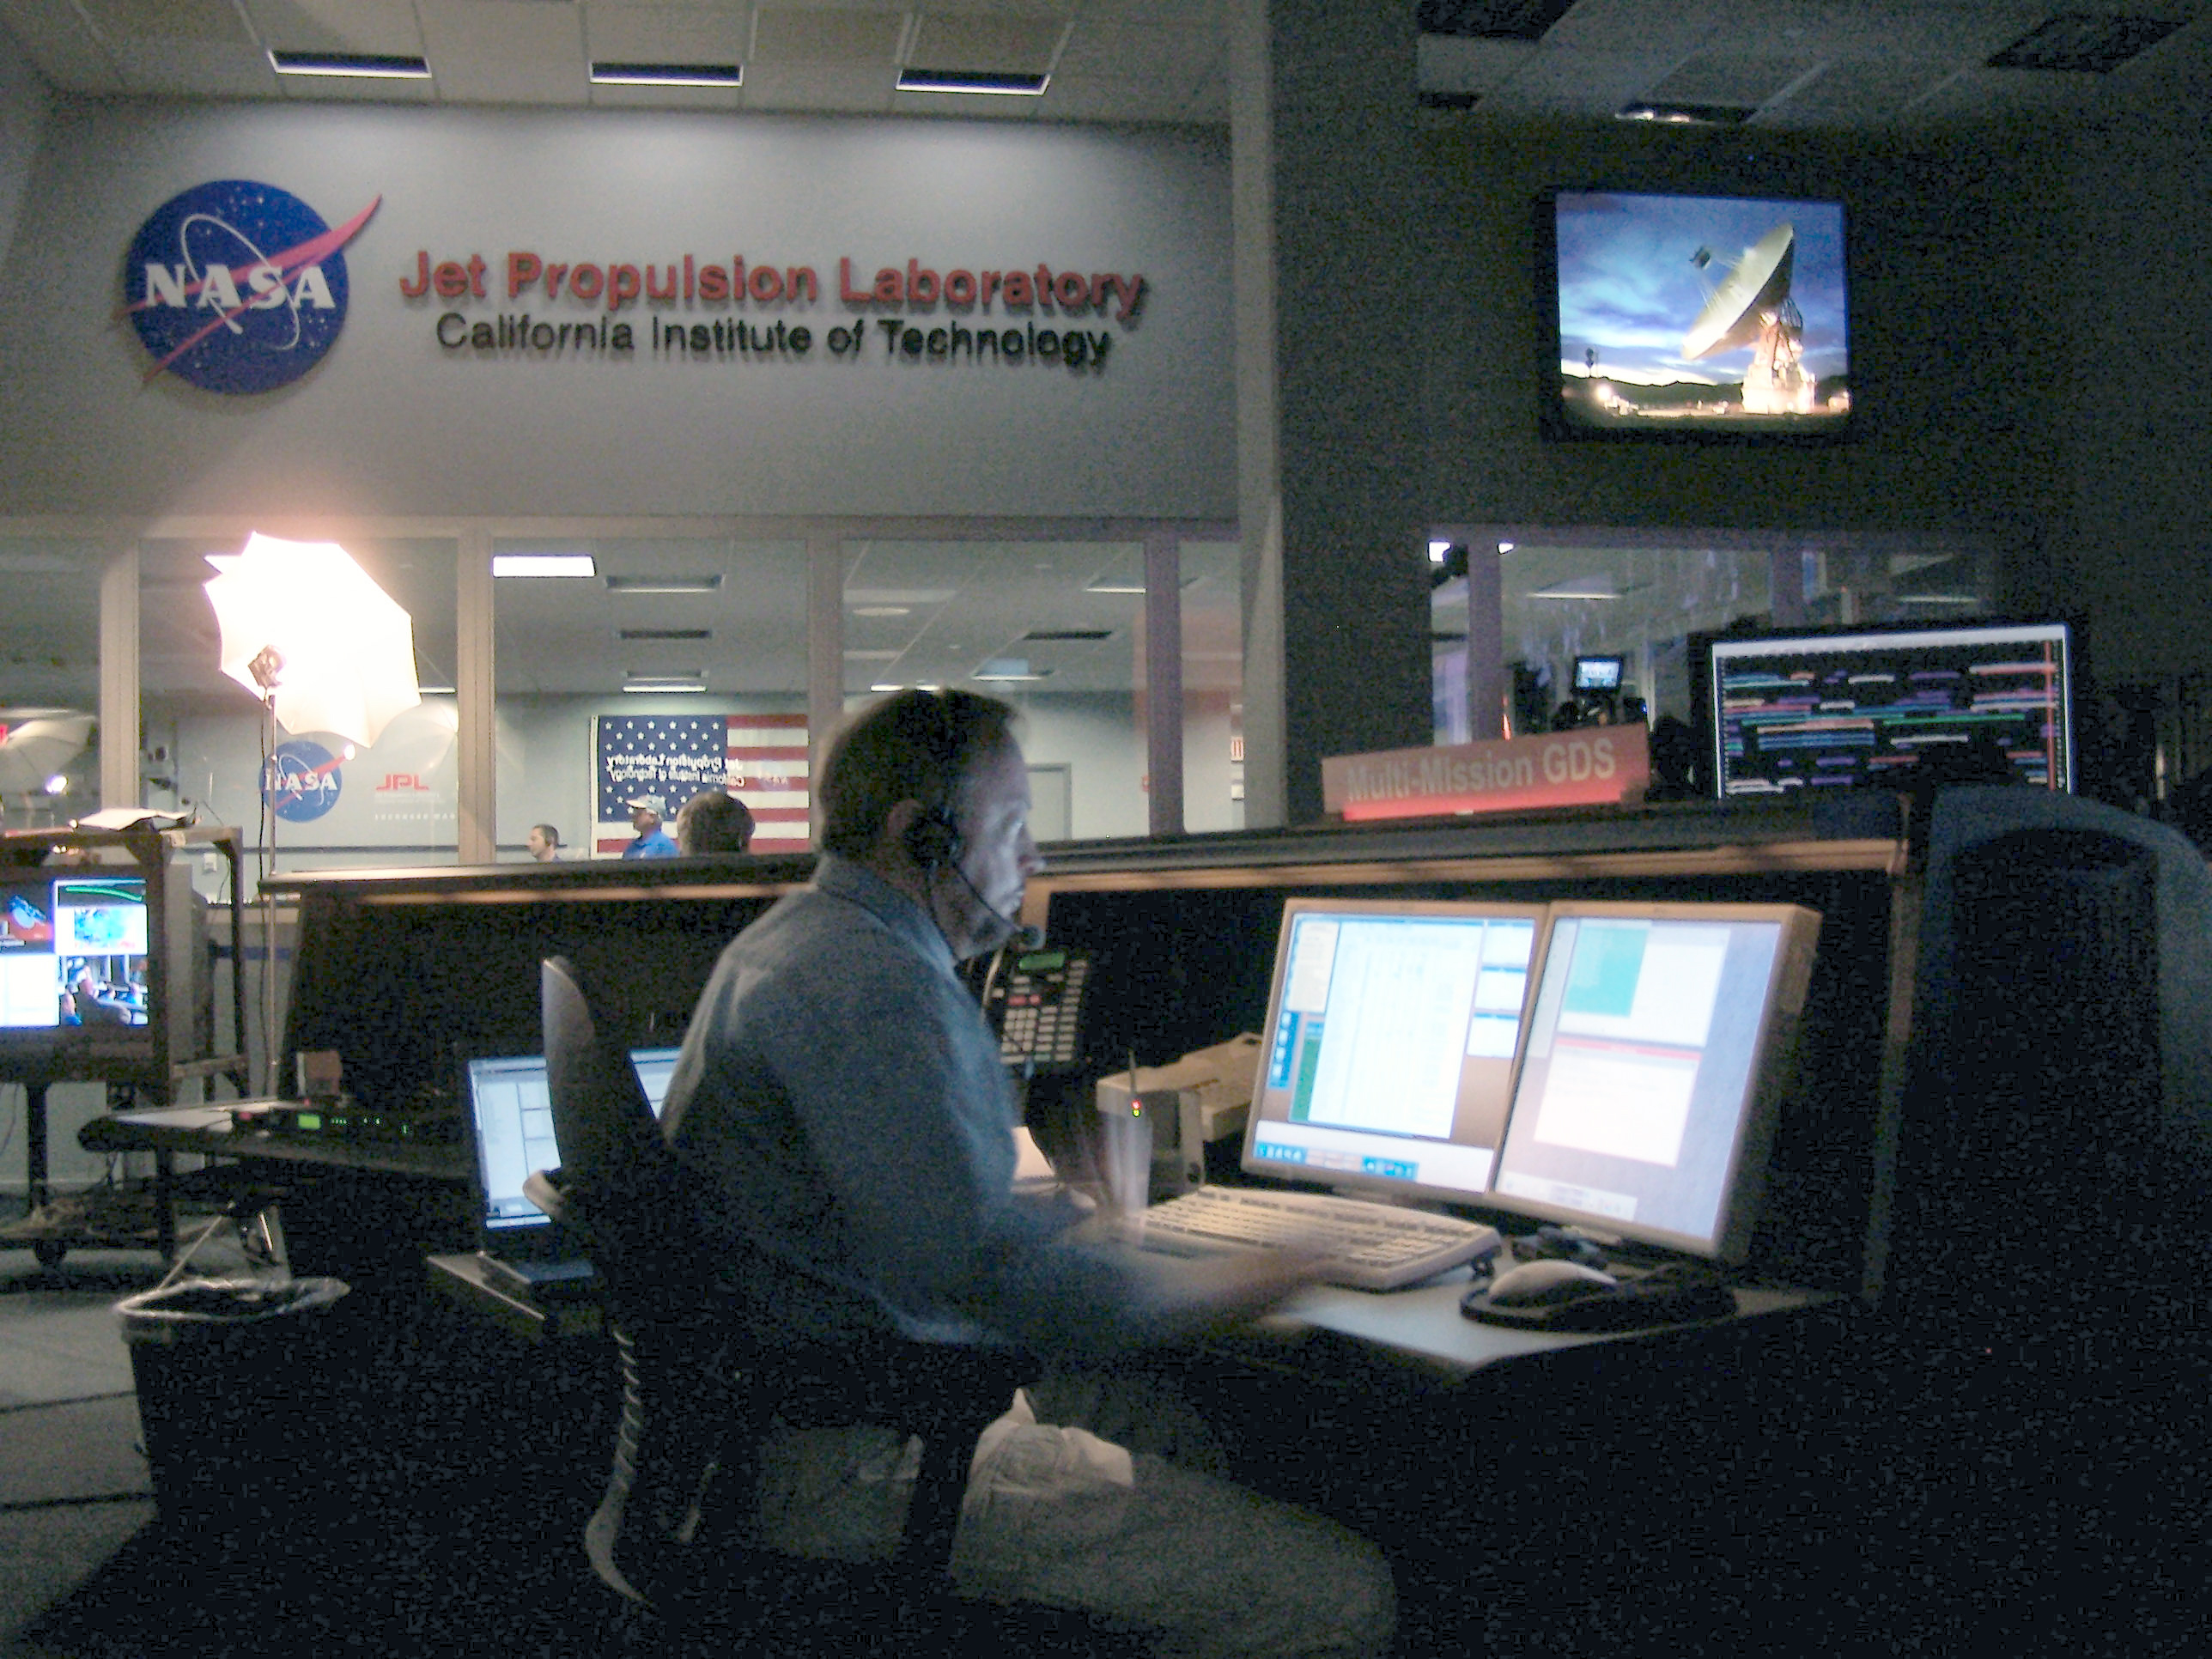 Terry Himes works on his computer console at NASA's Jet Propulsion Lab. Courtesy of Terry Himes.